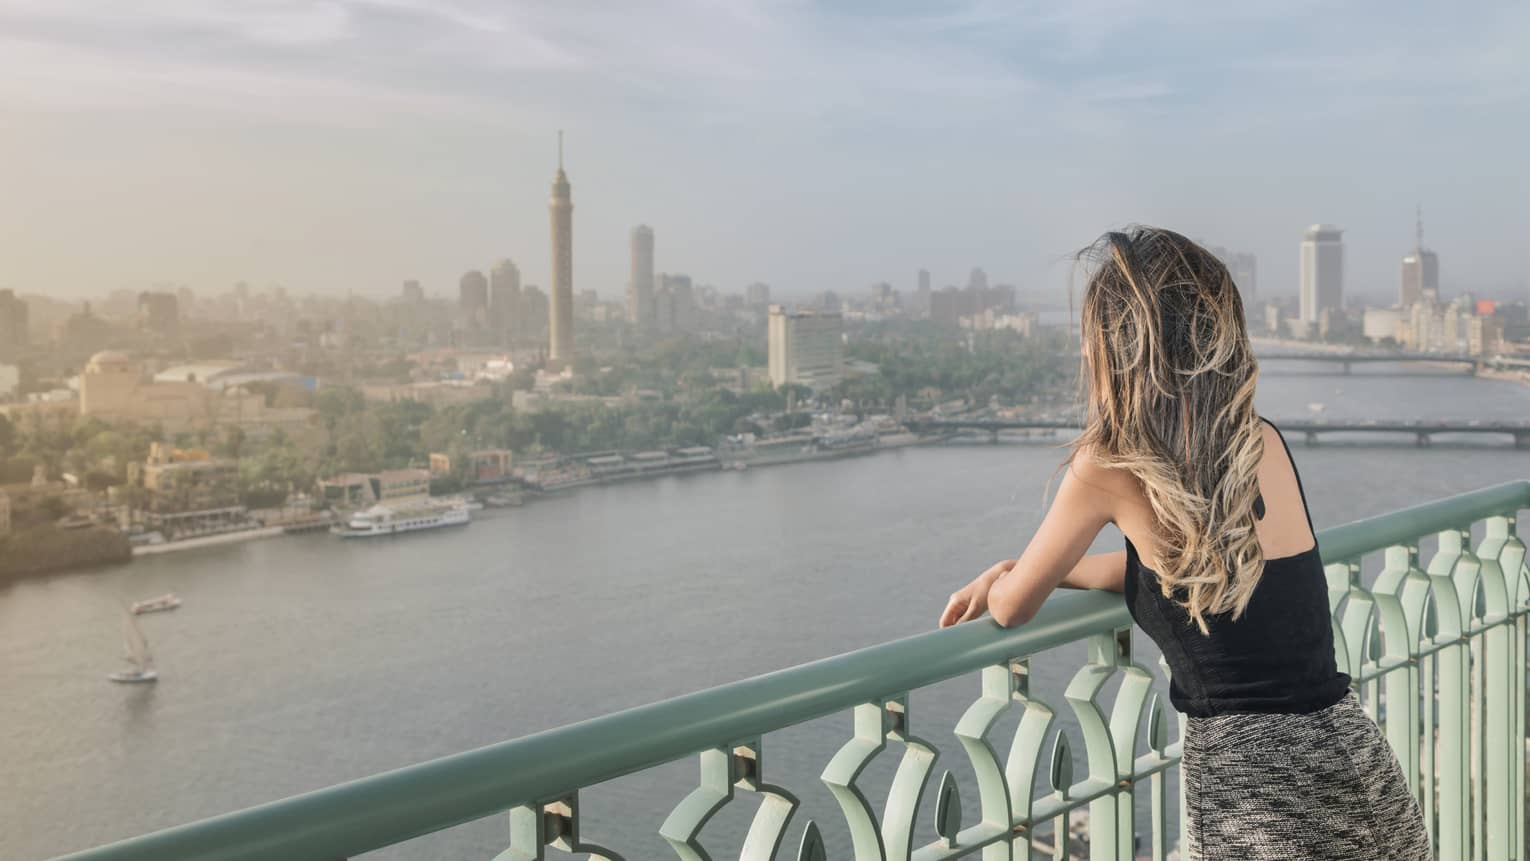 Woman with long blonde hair standing on balcony overlooking Nile River and Cairo